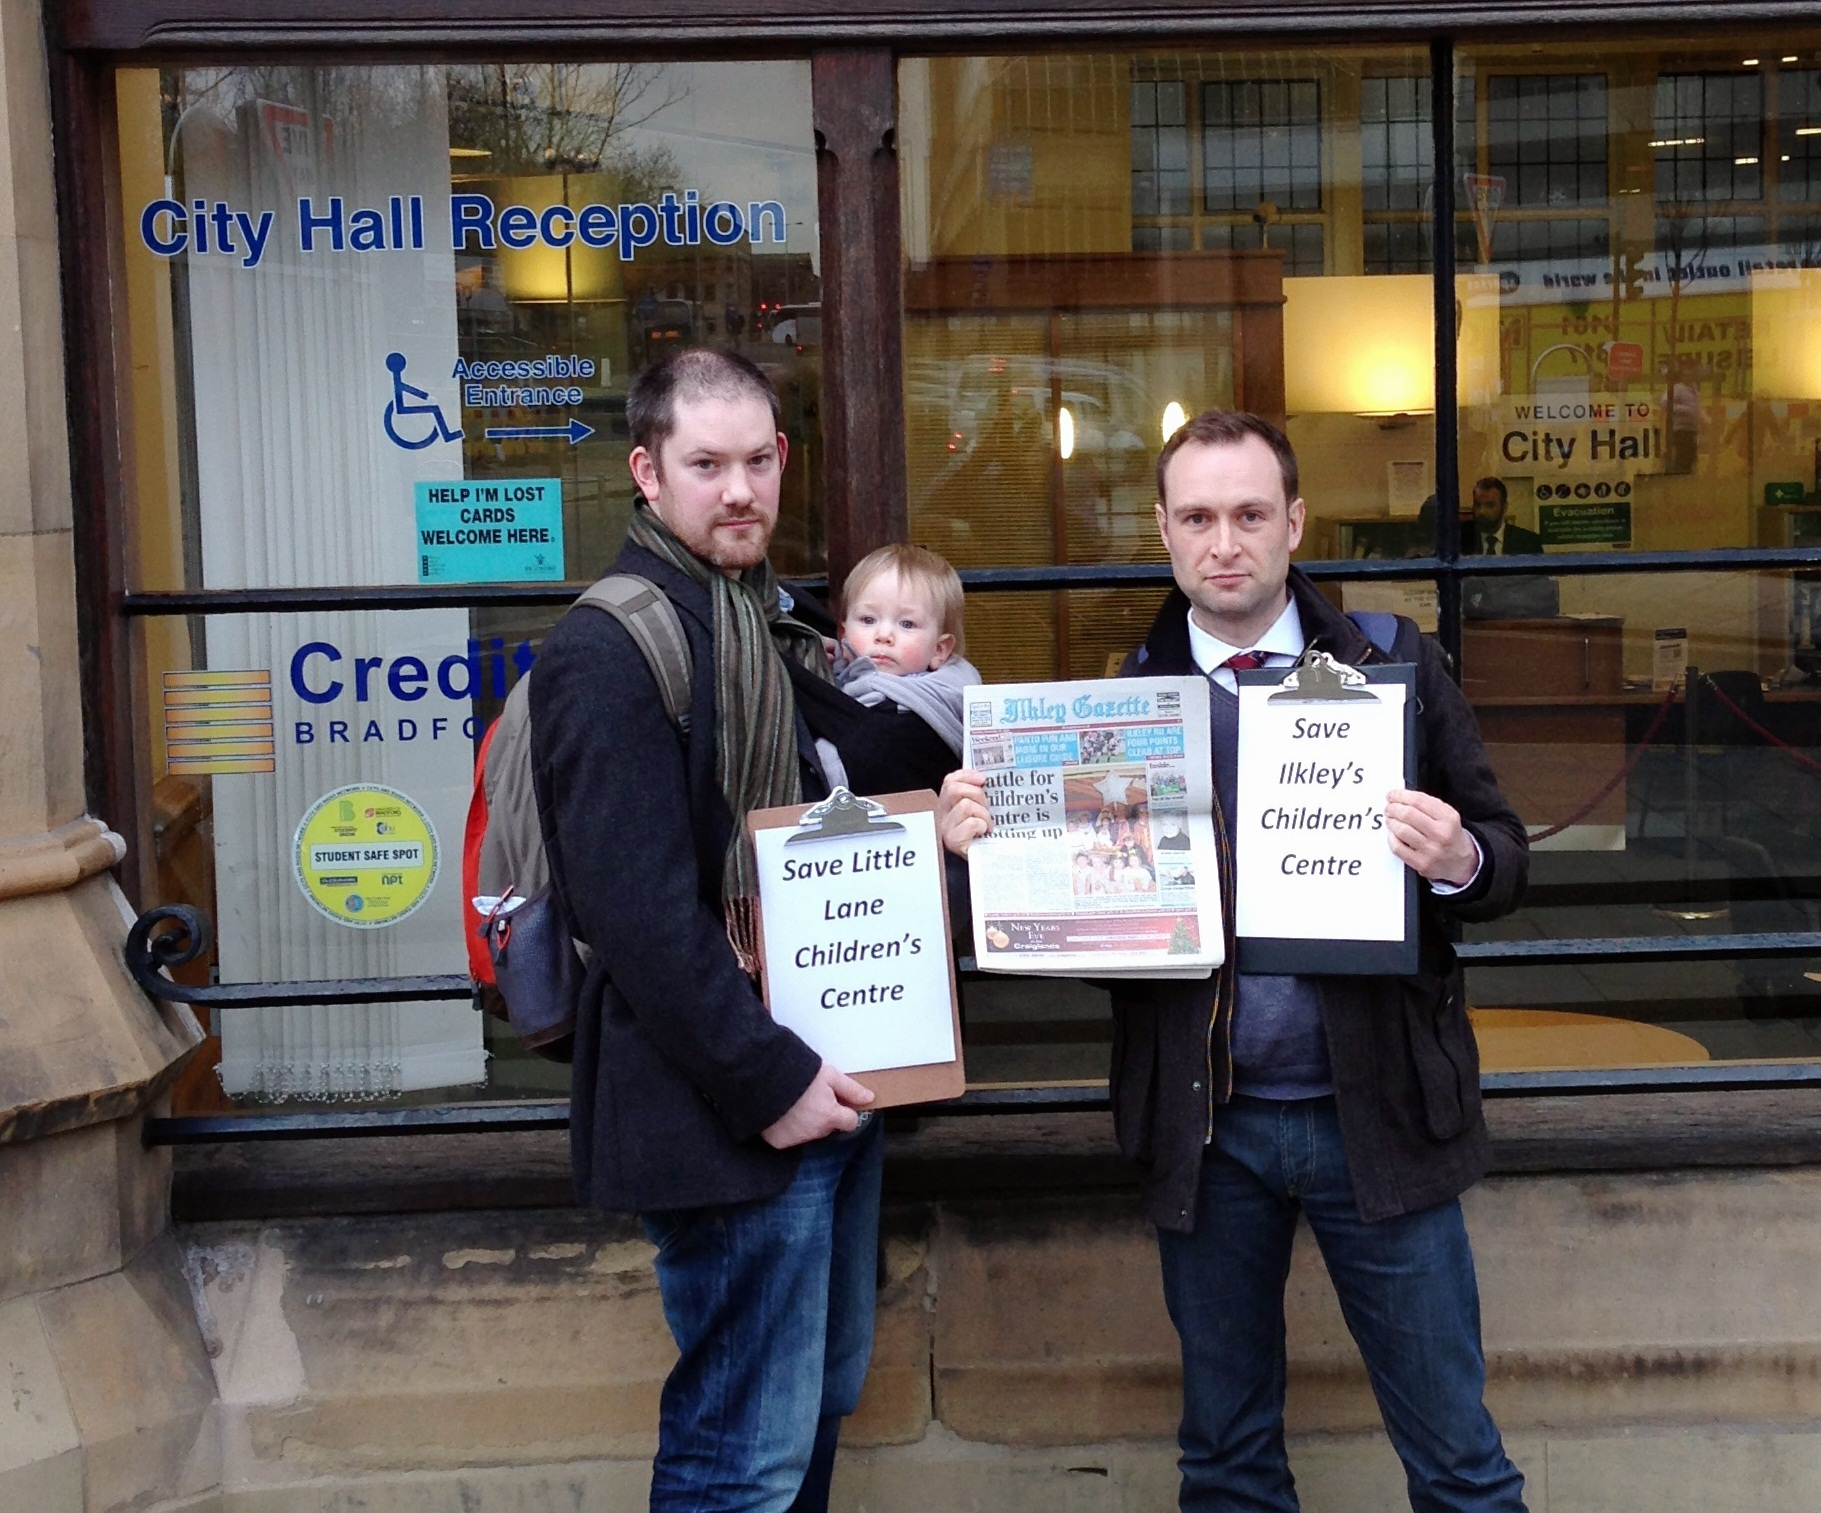 A petition to save Little Lane Children's Centre in Ilkley was presented to a full meeting of Bradford Council. Pictured is Simon Kelly, right, and Adam Lucas who is holding one-year-old Isaac Lucas